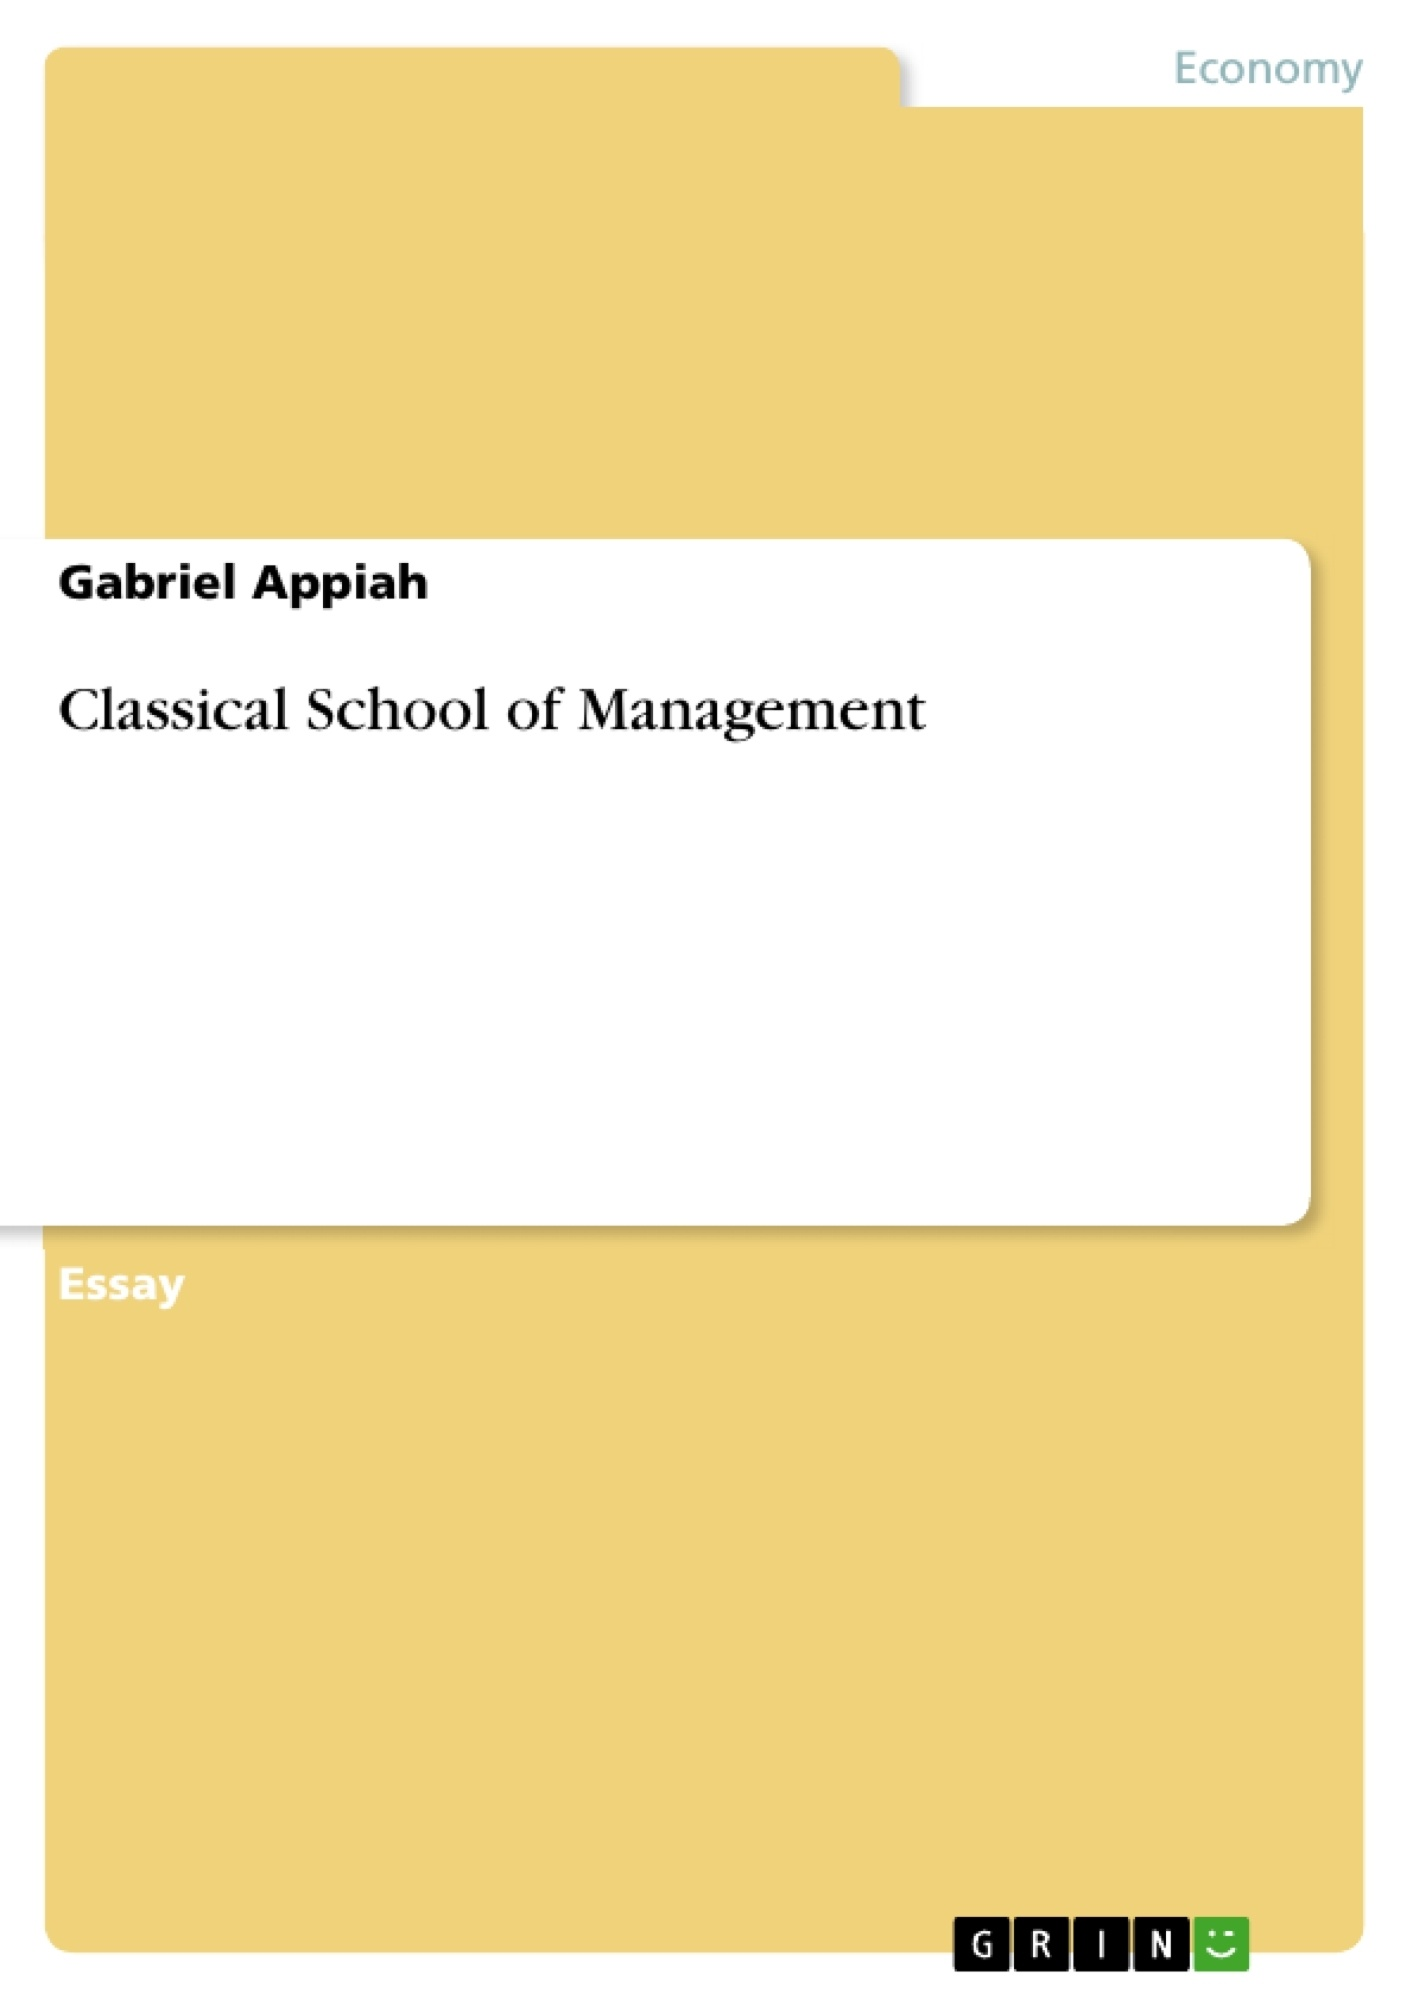 limitations on the classical school of management The classical school the classical school is the oldest formal school of management thought its roots pre-date the twentieth century the classical school of thought generally concerns ways to manage work and organizations more efficiently.